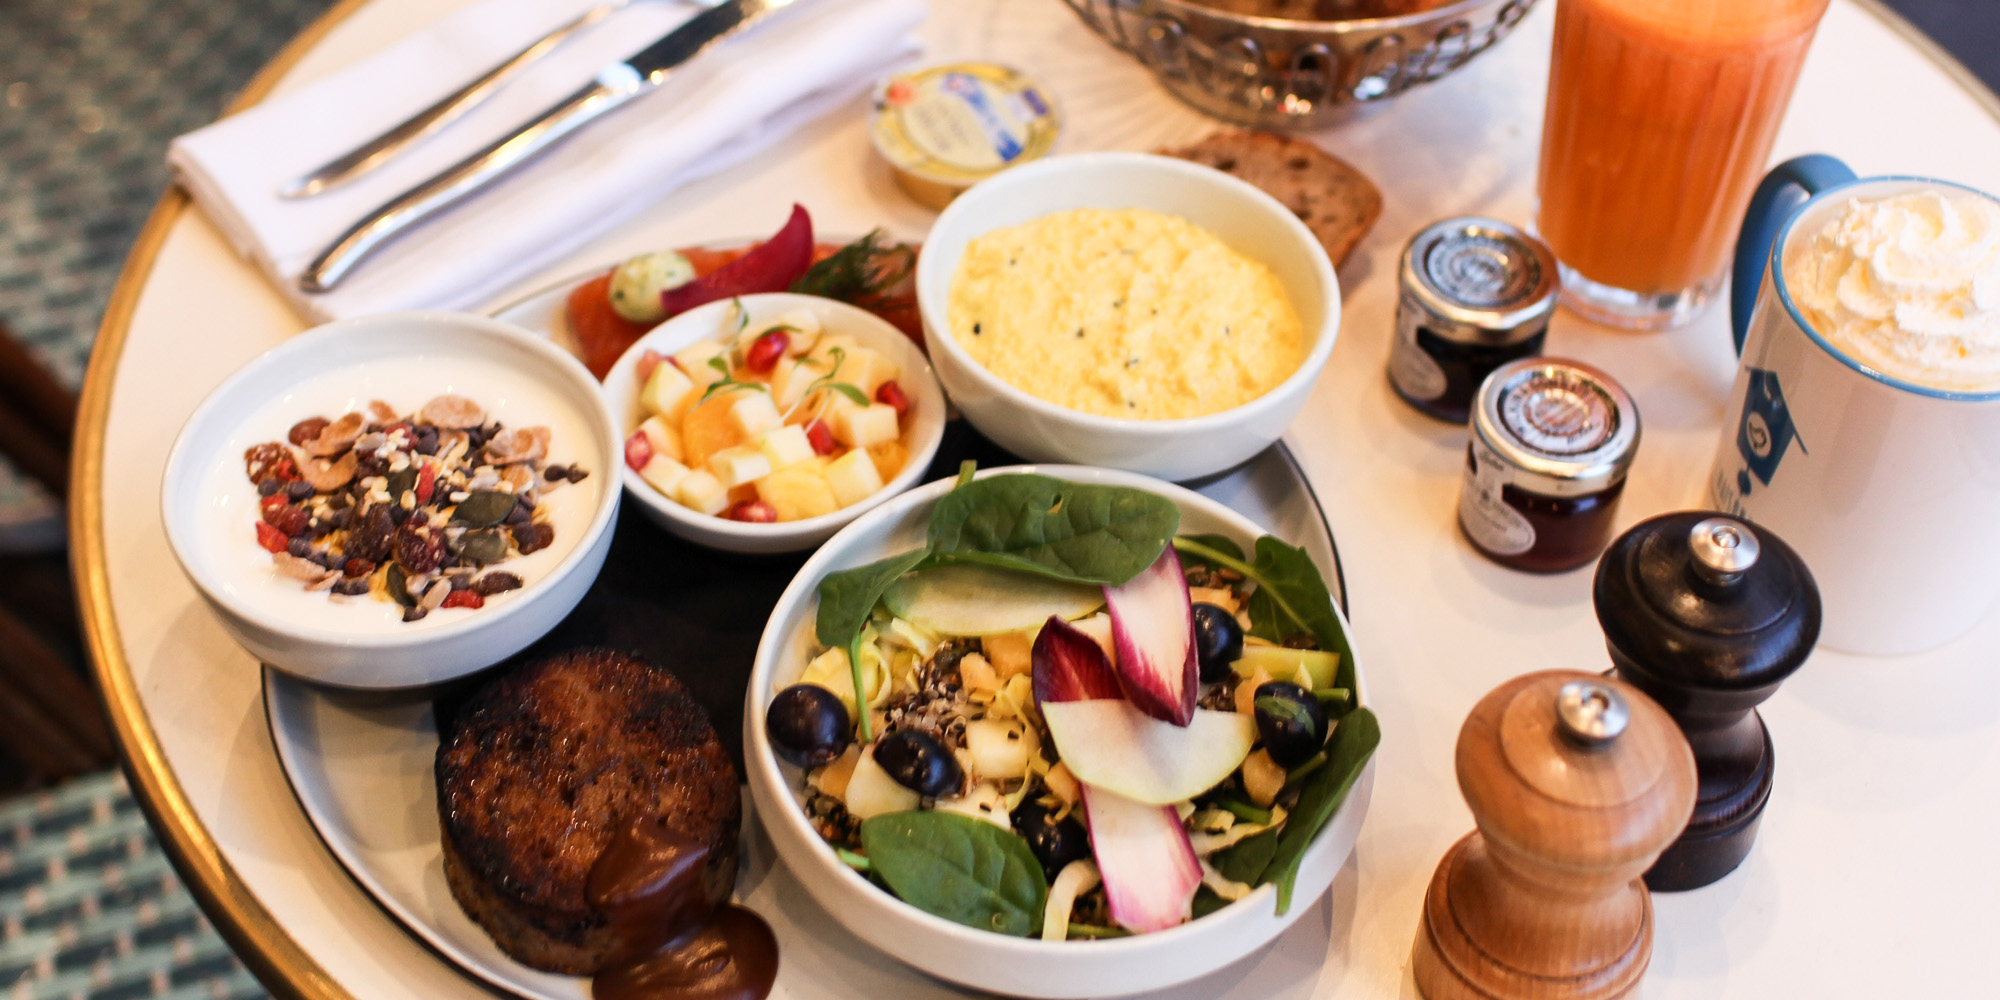 Brunch La Maison Bleue (75010 Paris)